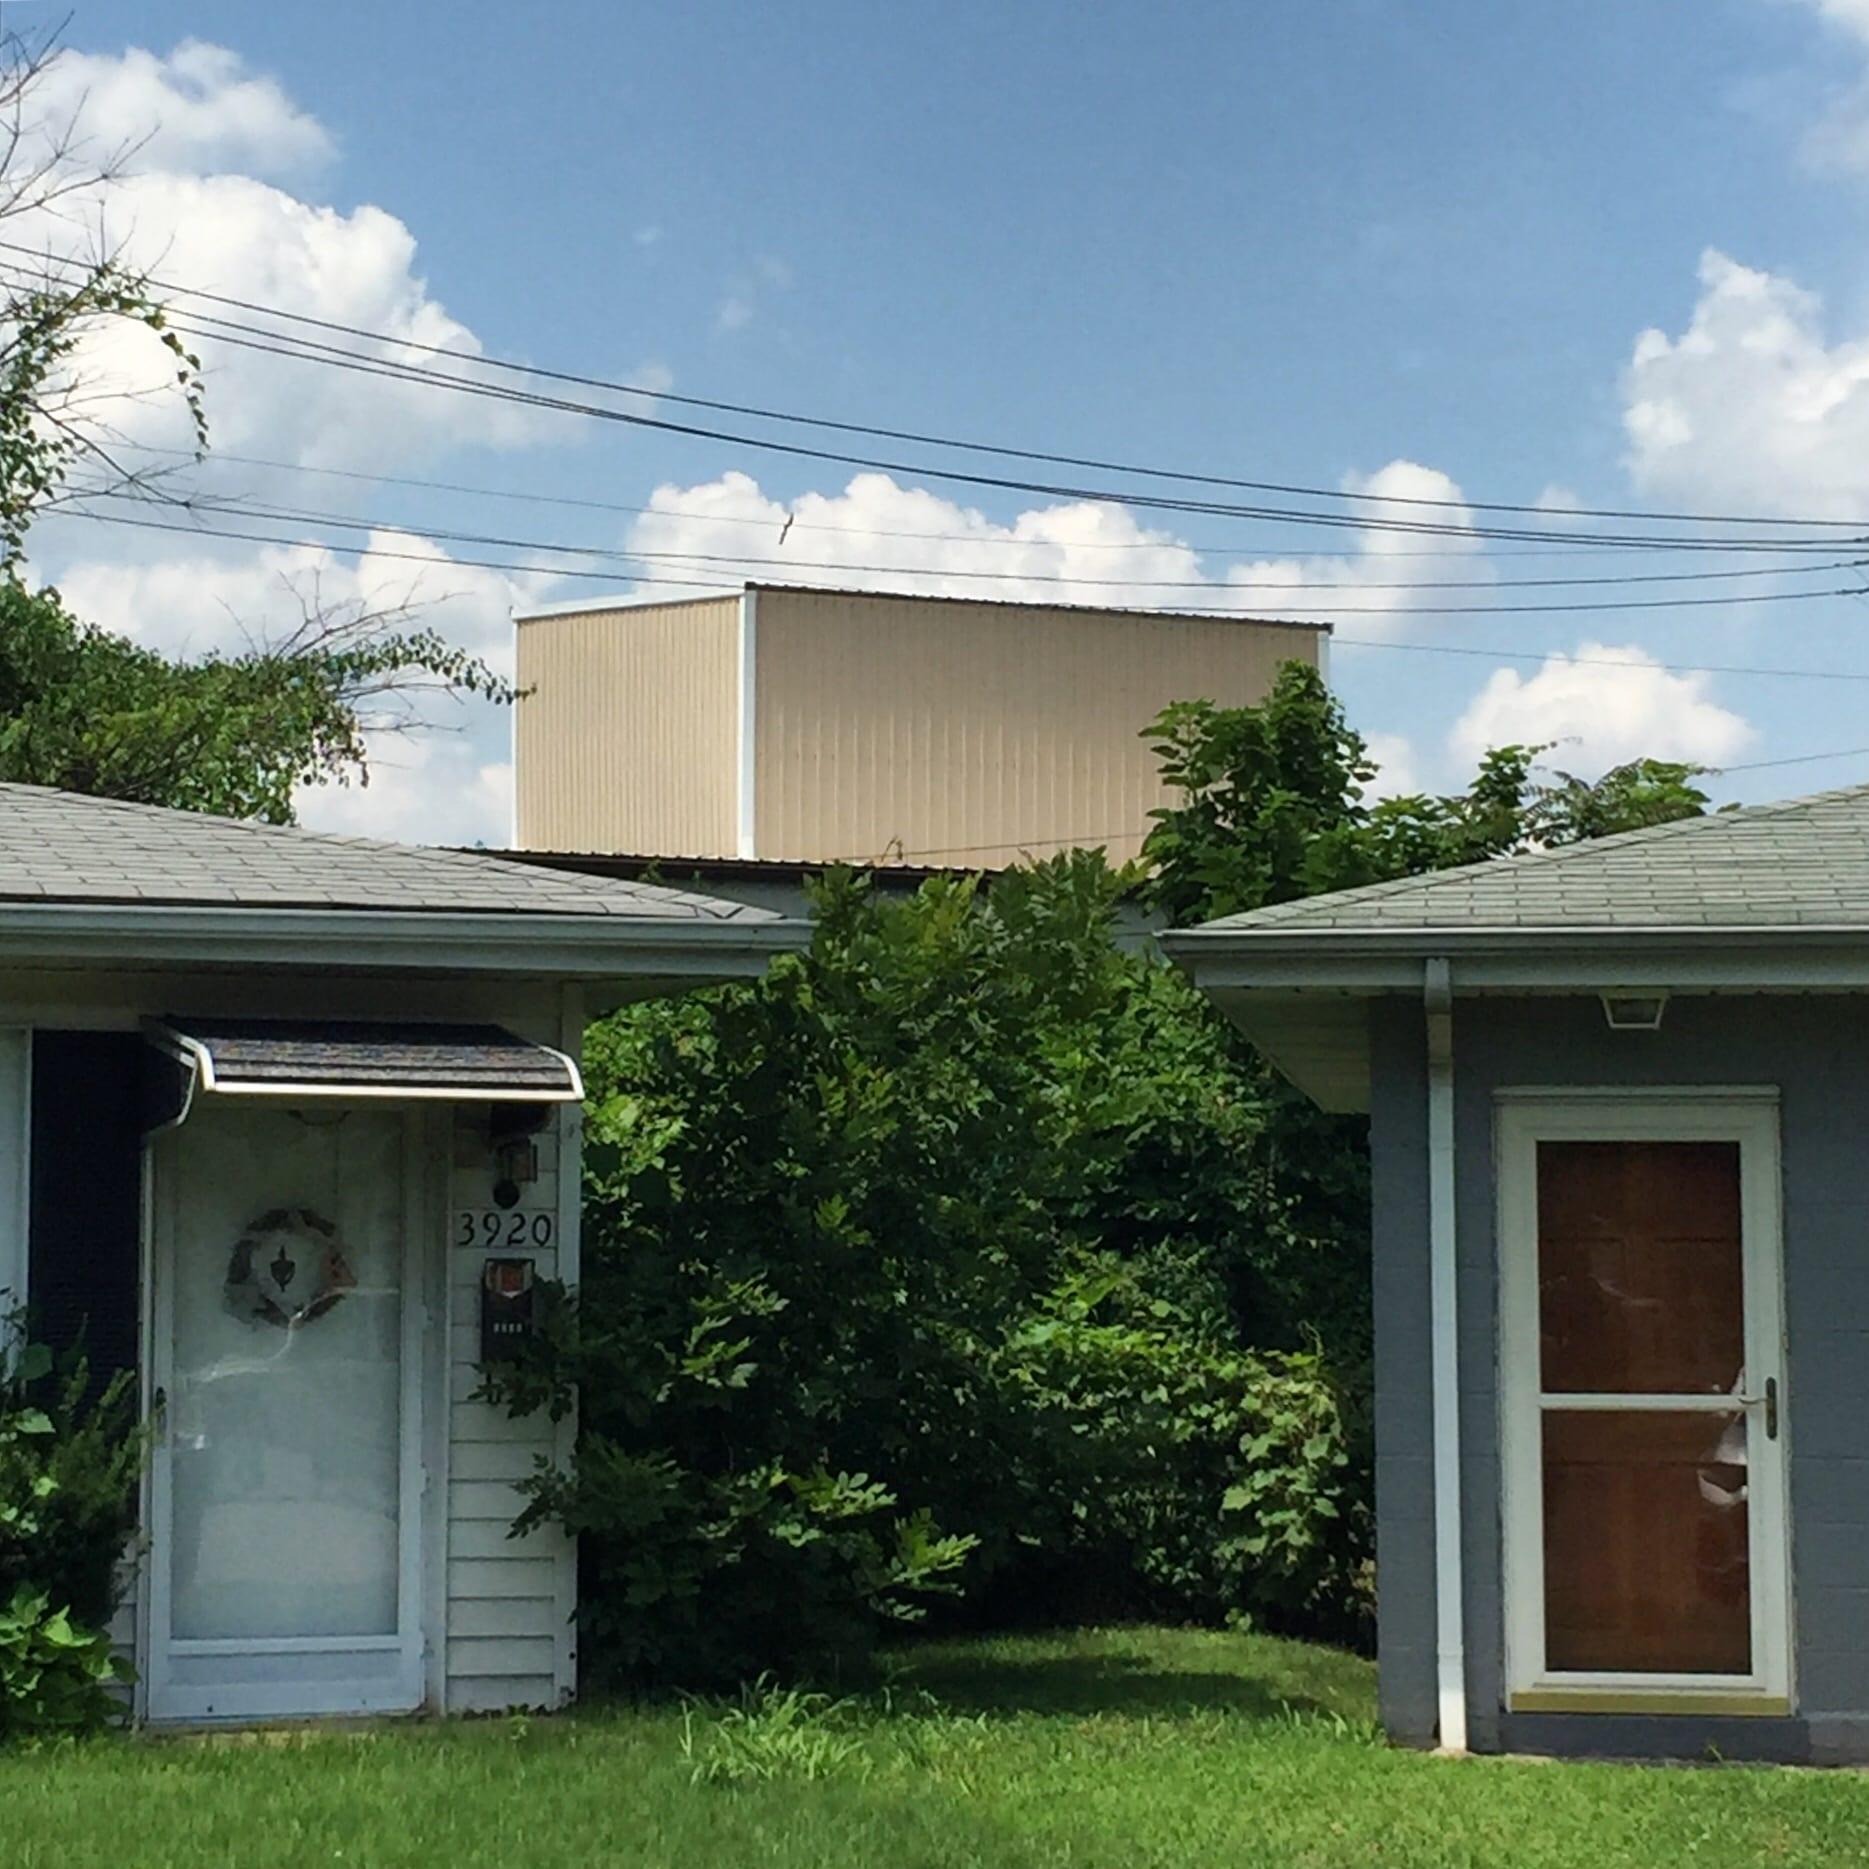 Neighboring ranch houses on Pomona Court in Dutchtown, St. Louis. Photo by Josh Burbridge.